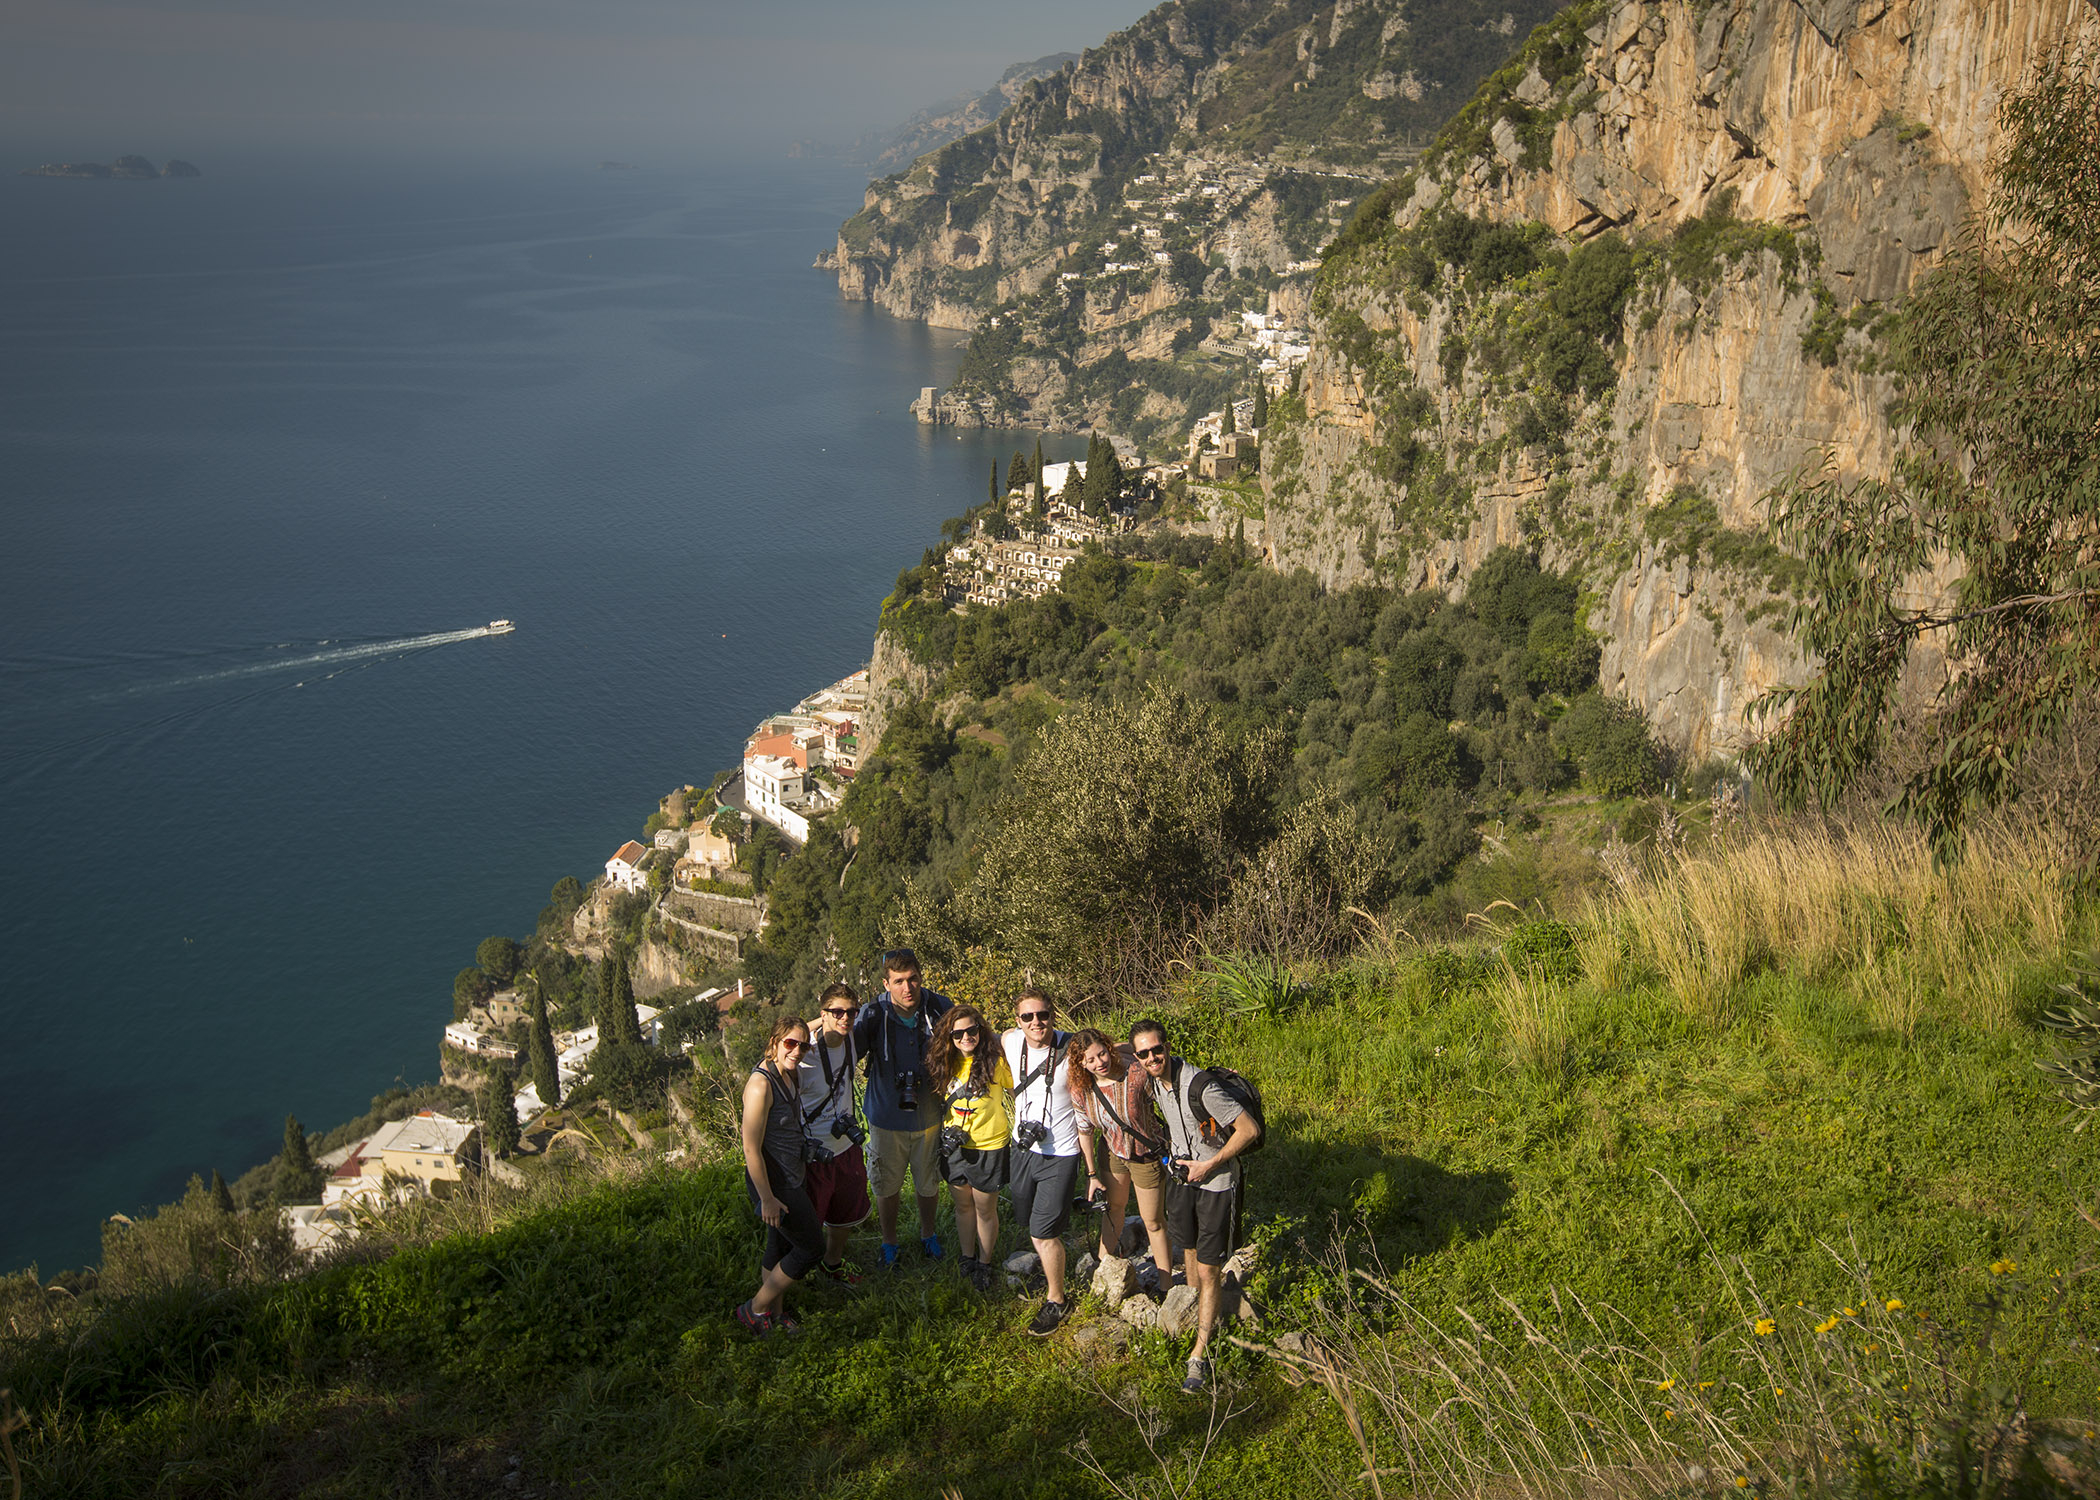 Students on the Walk of the Gods located on the Amalfi Coast (Photo: Canisius College)